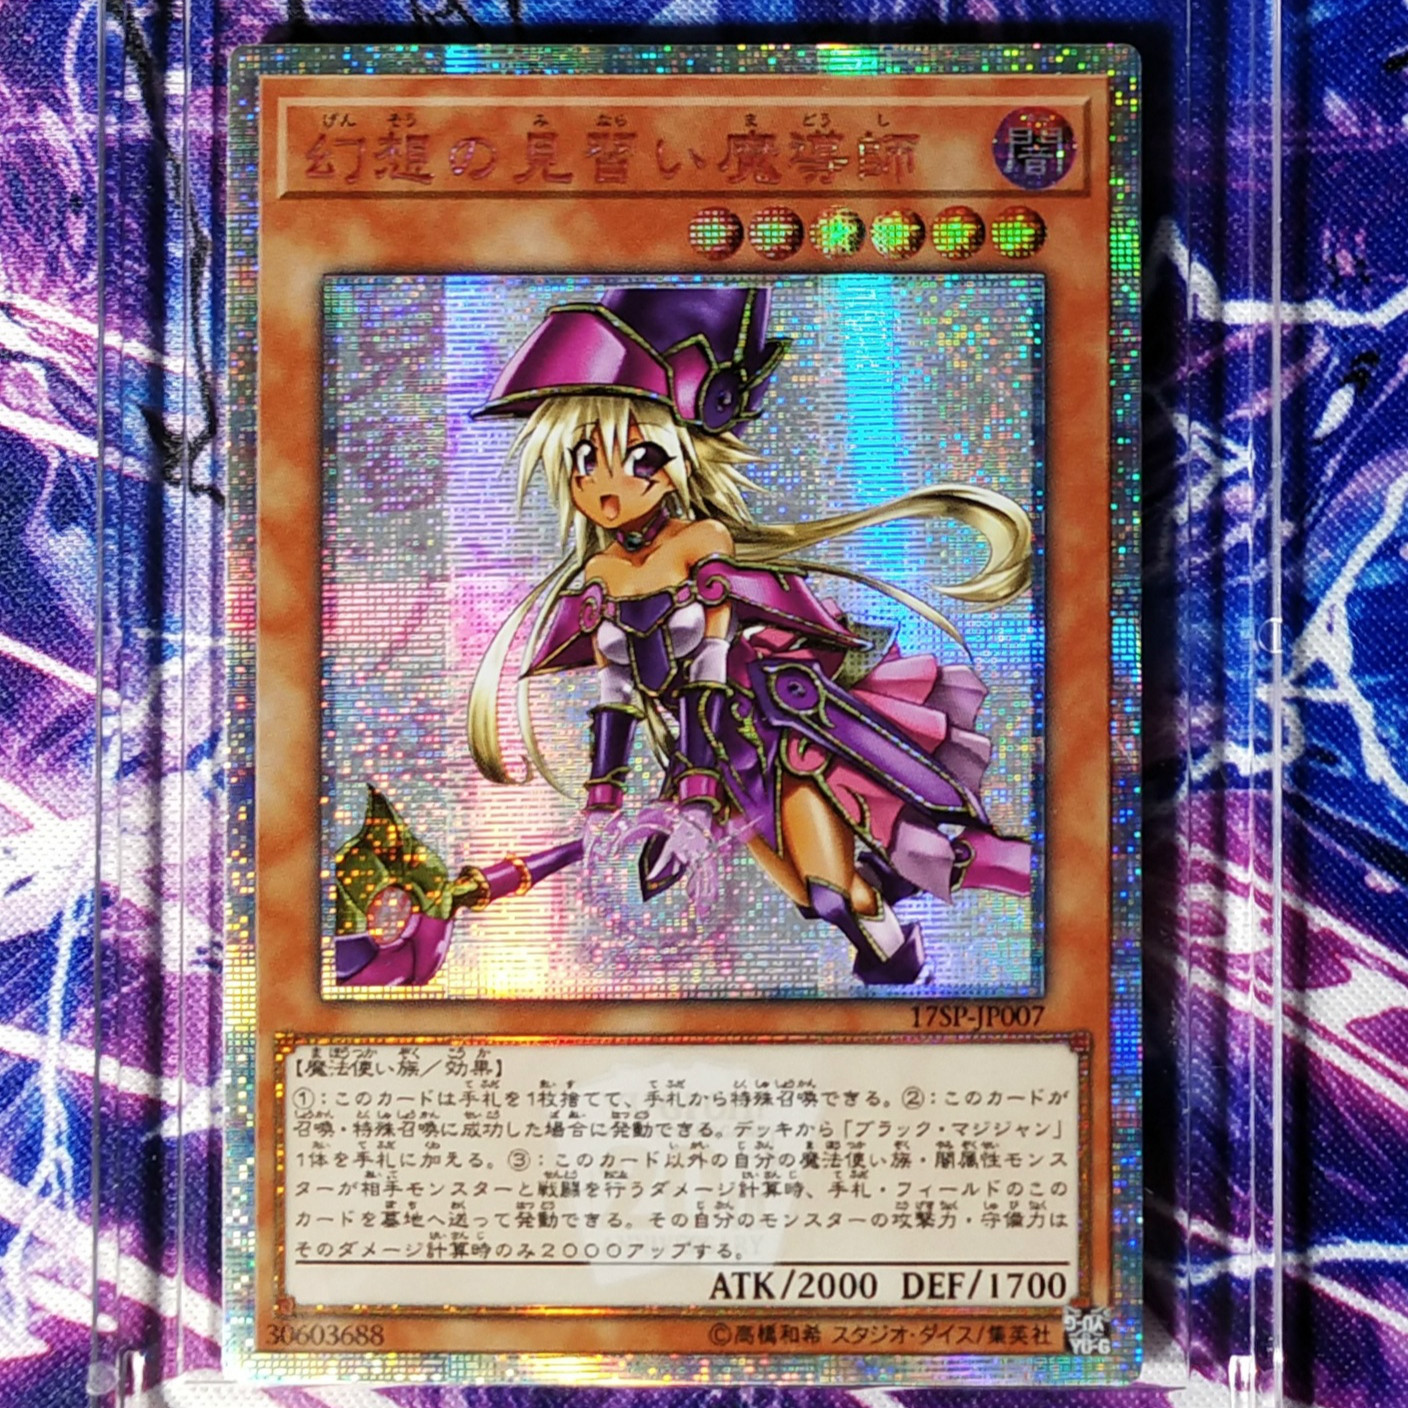 Yu Gi Oh DIY Apprentice Illusion Magician Colorful Toys Hobbies Hobby Collectibles Game Collection Anime Cards